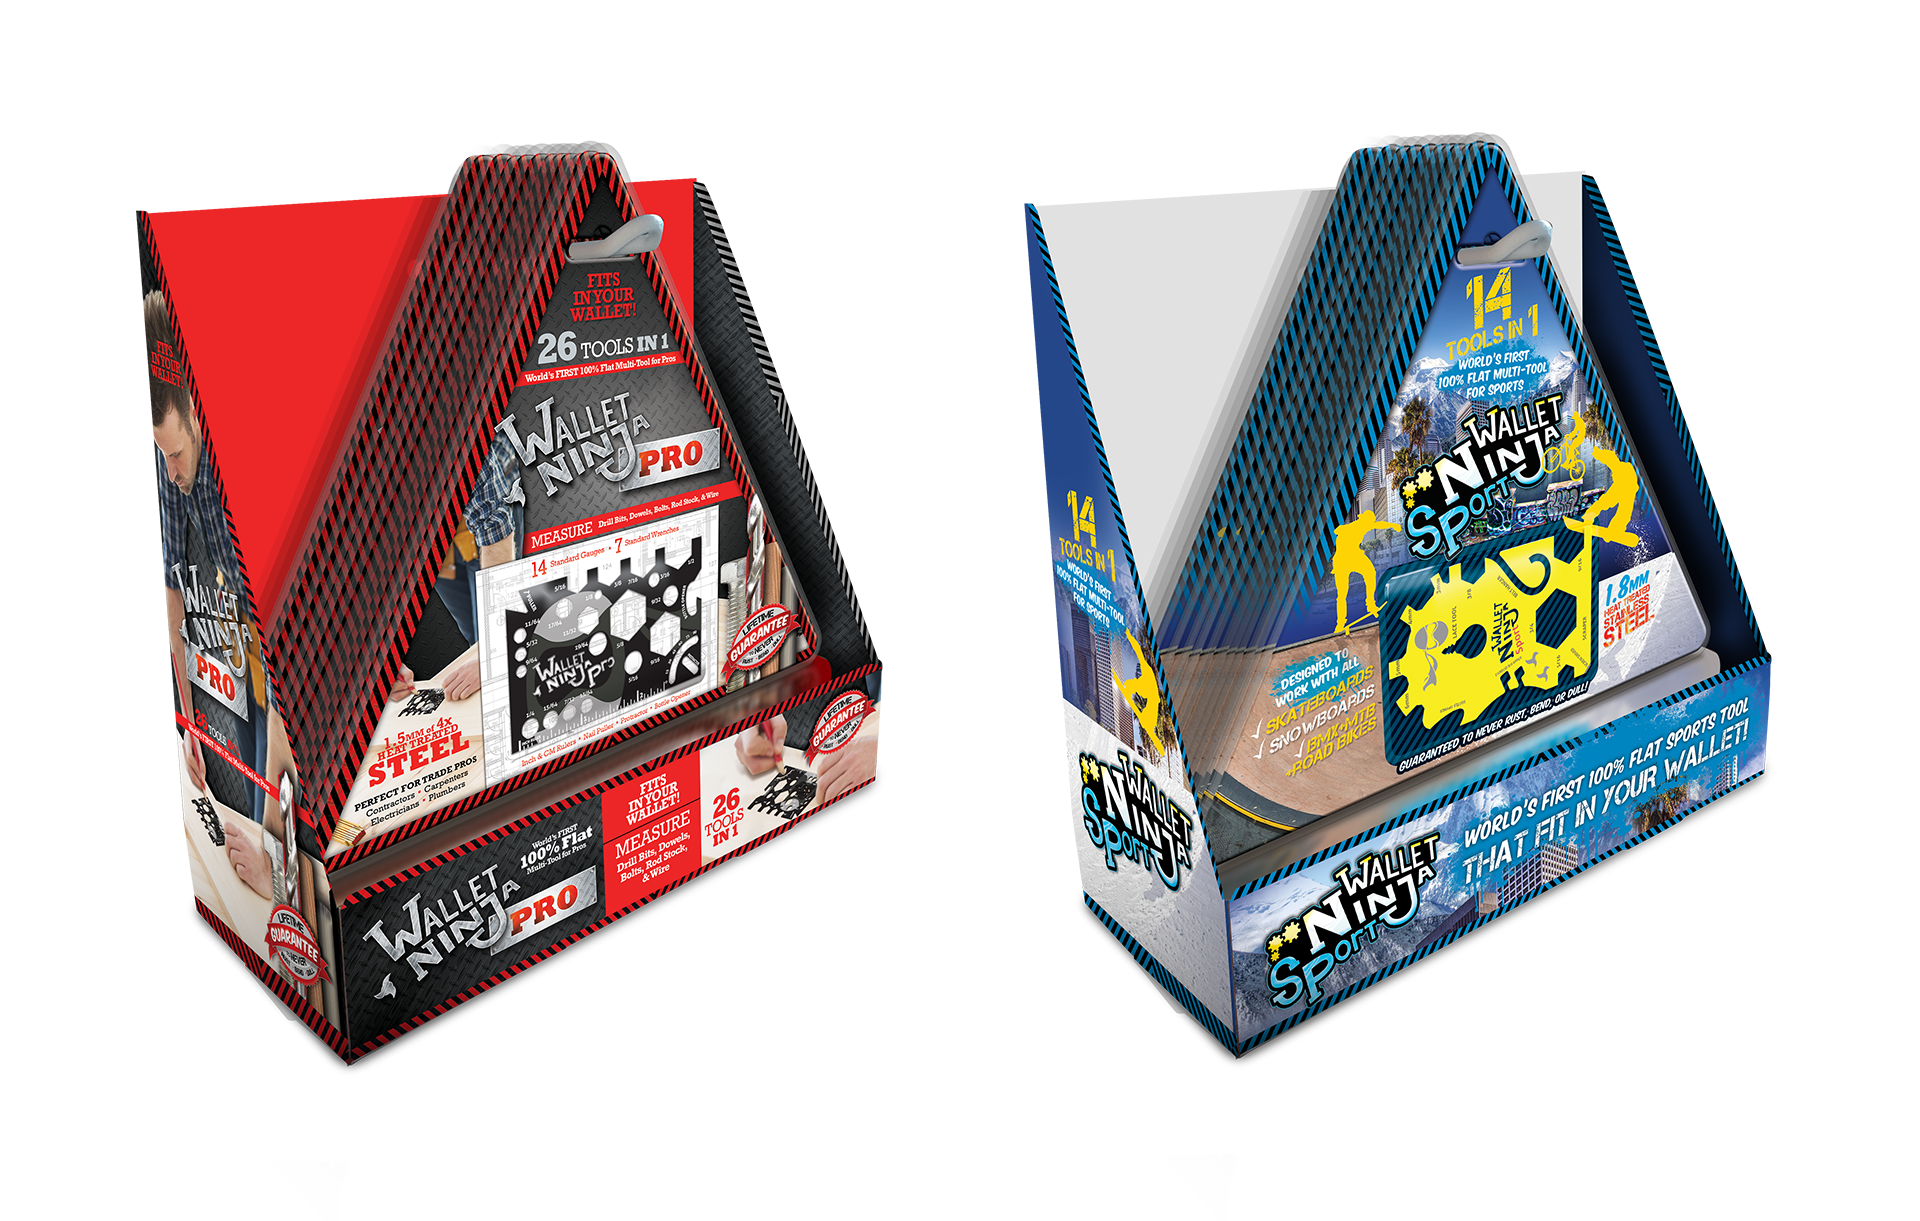 Wallet Ninja Pro and Sport Product Packaging Design by Scott Luscombe of Creatibly